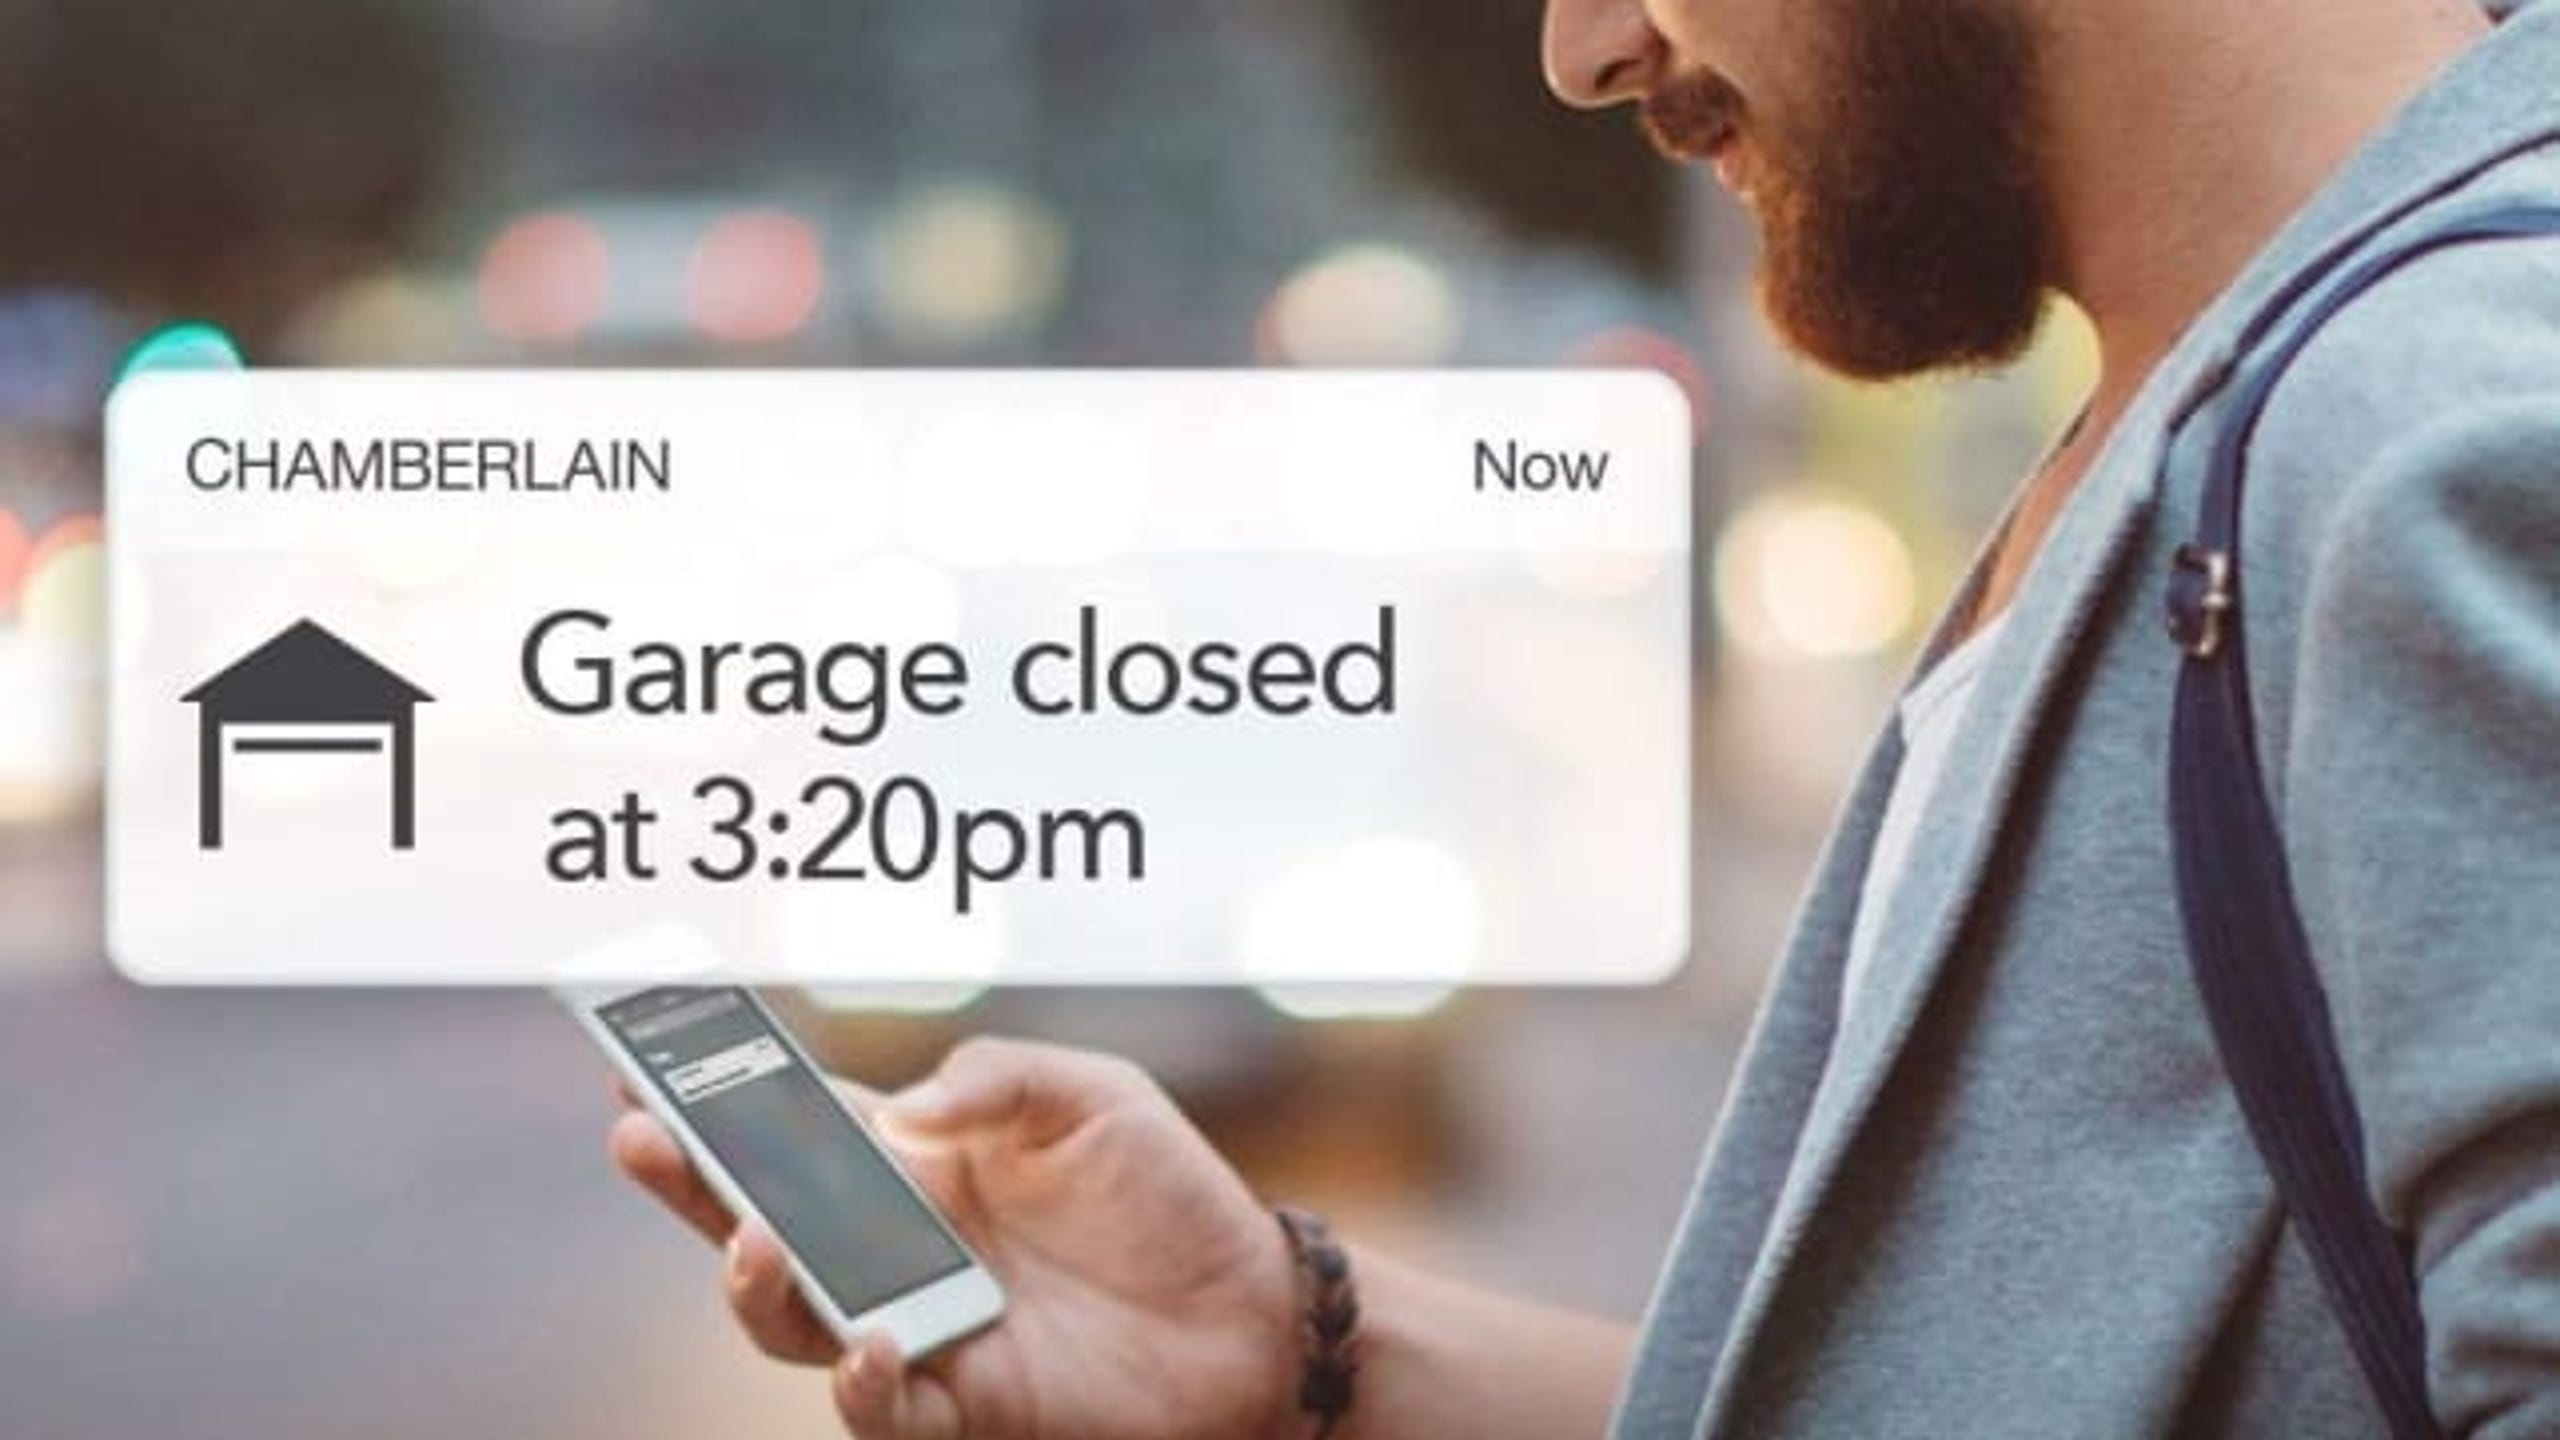 "Forget that feeling of &ldquo;did I forget to close the garage?&rdquo; with the MyQ smart garage door opener. You can open and close your garage with a few quick taps on your phone, whether you&rsquo;re home or at the office. (<a href=""https://www.amazon.com/Smart-Garage-Opener-Chamberlain-MYQ-G0301/dp/B075H7Z5L8/ref=as_li_ss_tl?crid=1DJ0BM5CJ4249&amp;keywords=myq+garage+door+opener&amp;qid=1565887358&amp;s=gateway&amp;sprefix=myq+,aps,176&amp;sr=8-1-spons&amp;psc=1&amp;spLa=ZW5jcnlwdGVkUXVhbGlmaWVyPUEzNEM4N0xONkkwT1ImZW5jcnlwdGVkSWQ9QTAxMjA5MzVGMklWREJNSE4yNDEmZW5jcnlwdGVkQWRJZD1BMDQwMjIyODFGNVpVQ0RKMzEyUzkmd2lkZ2V0TmFtZT1zcF9hdGYmYWN0aW9uPWNsaWNrUmVkaXJlY3QmZG9Ob3RMb2dDbGljaz10cnVl&amp;linkCode=ll1&amp;tag=usatgallery-20&amp;linkId=1680e51024f45a4e3d907717b9f1db58&amp;language=en_US"">$43.17 on Amazon</a>)"